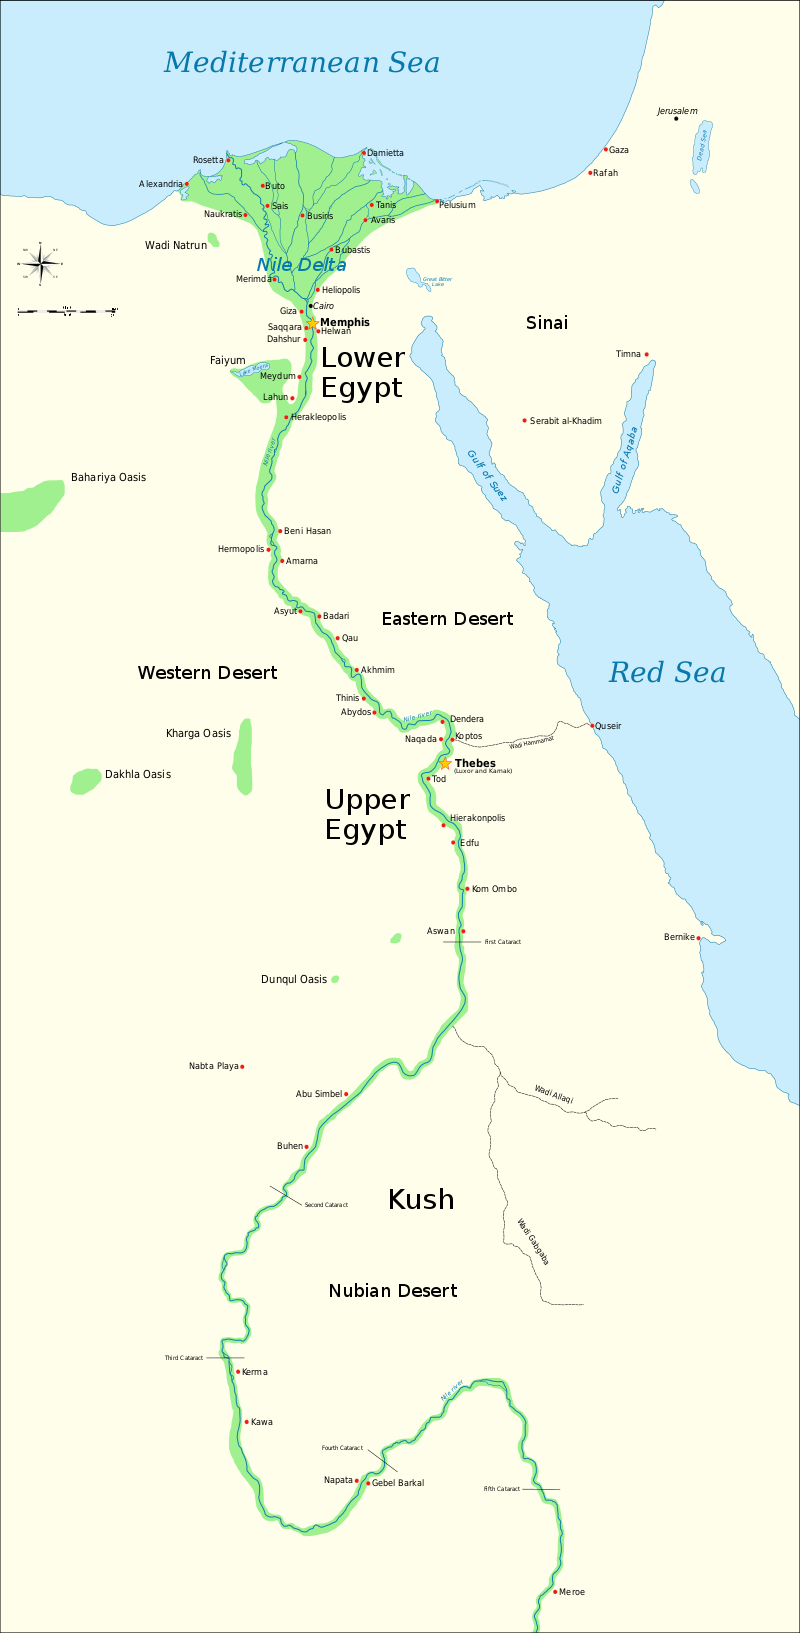 https://upload.wikimedia.org/wikipedia/commons/thumb/1/17/Ancient_Egypt_map-en.svg/800px-Ancient_Egypt_map-en.svg.png